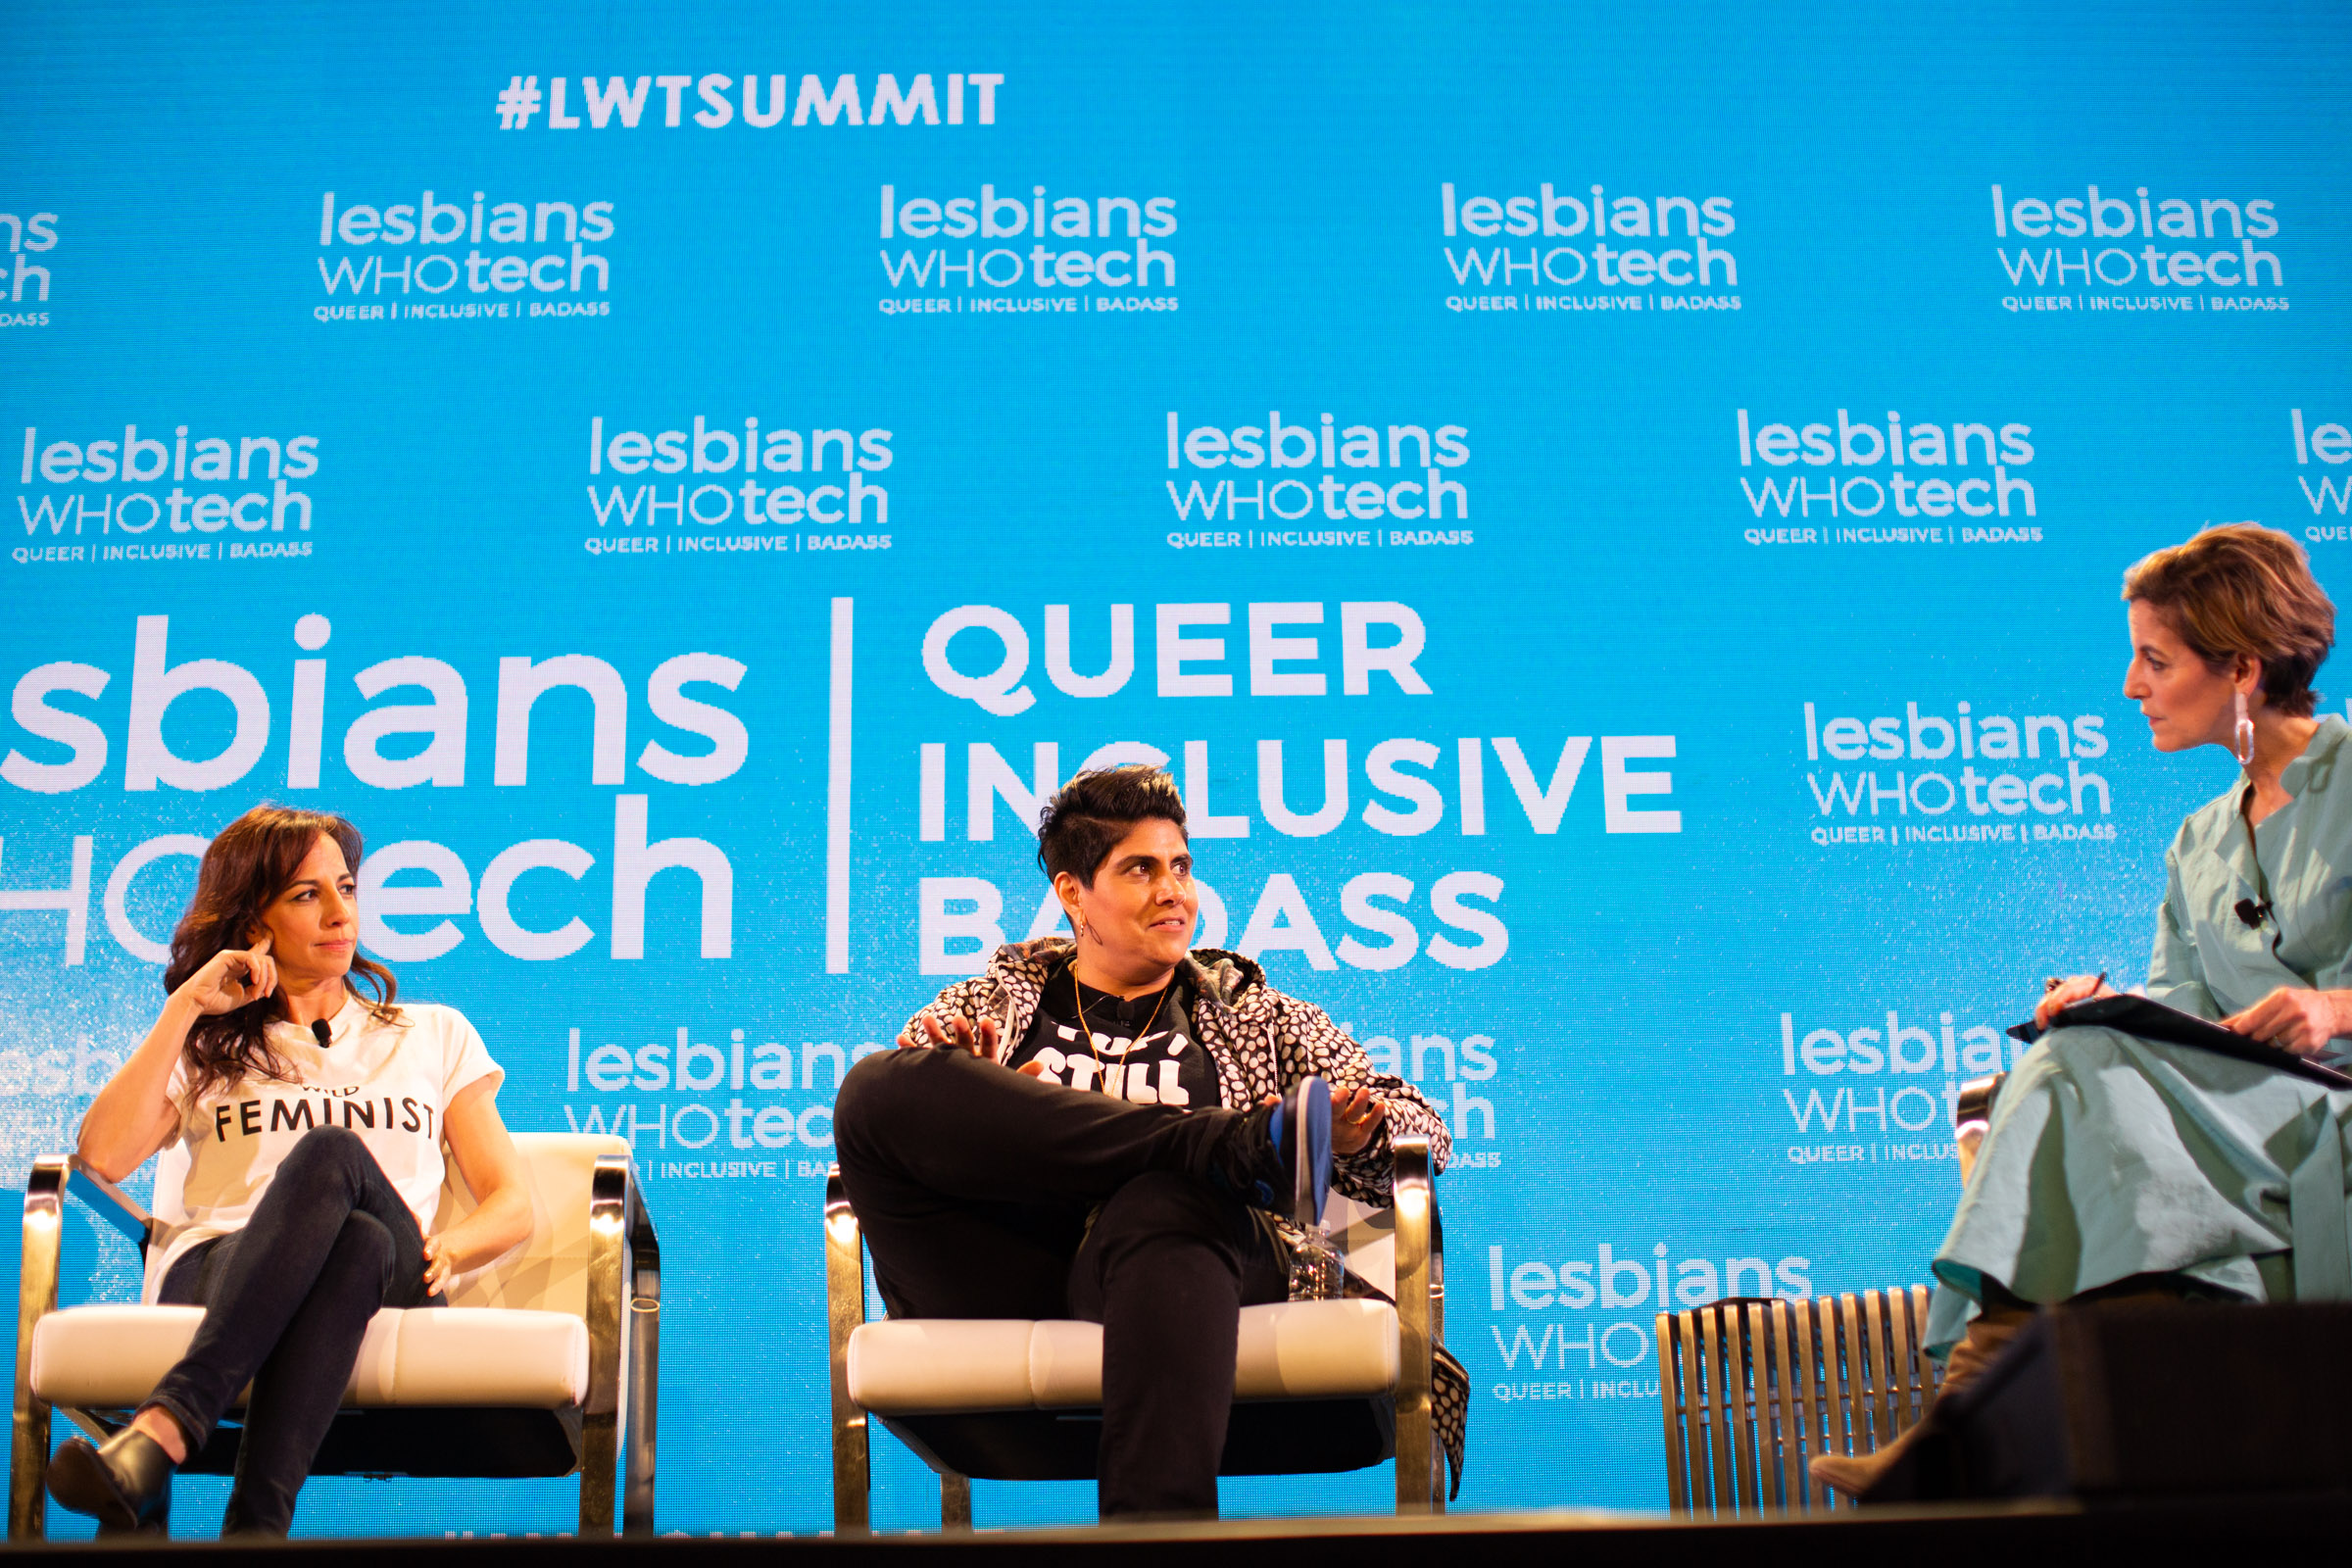 From left to right: Amy Taylor, president and CMO at Red Bull North America, Moj Mahdara, CEO and founder at Beautycon, and Cindi Leive, Senior Fellow at University of Southern California, journalist, and former editor-in-chief at Glamour. Photo by Tumay Aslay